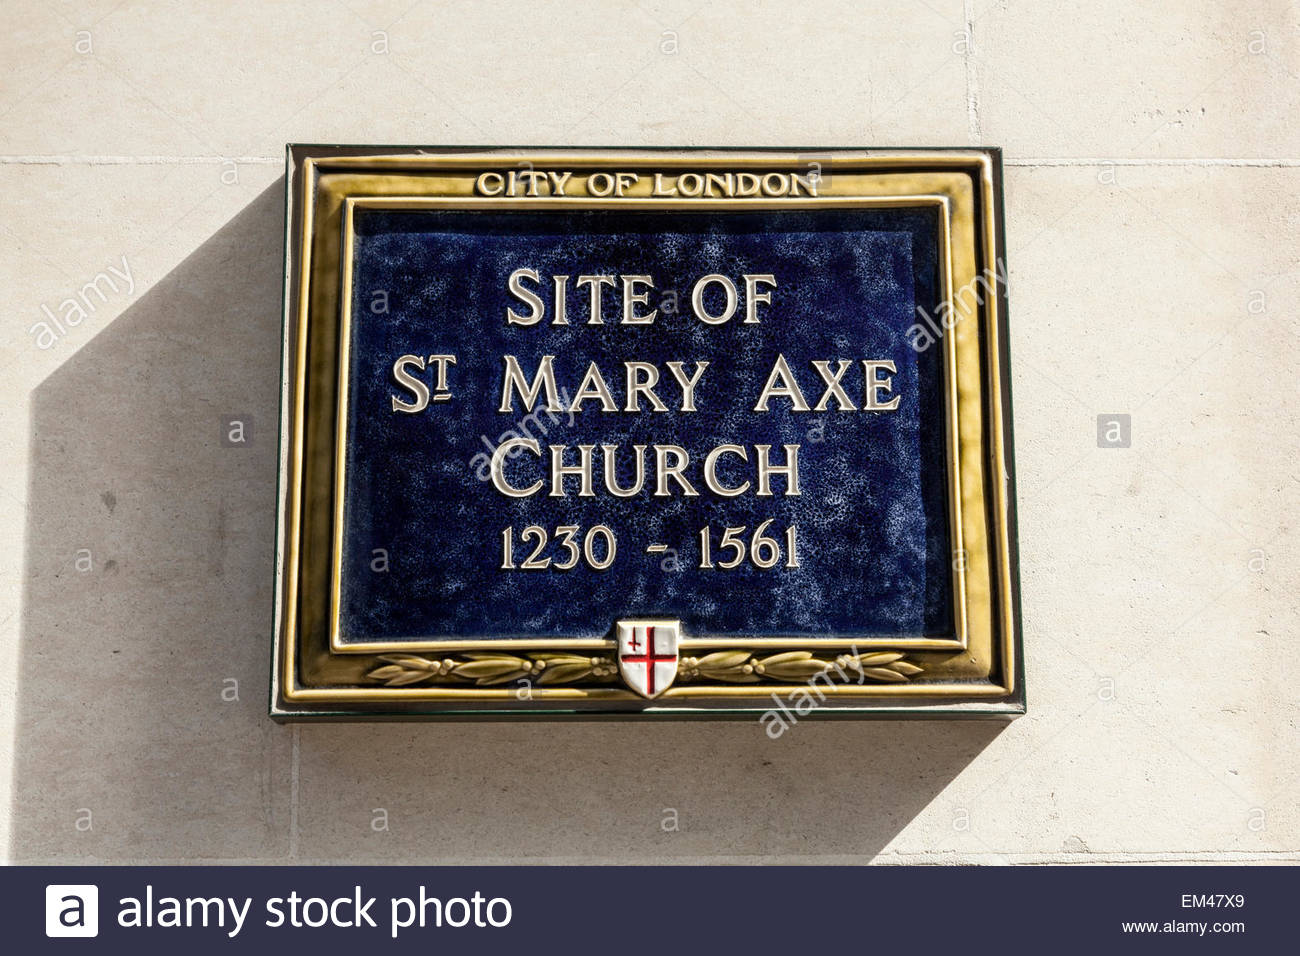 Blue plaque showing the site of St Mary Axe Church 1230 - 1561 - Stock Image